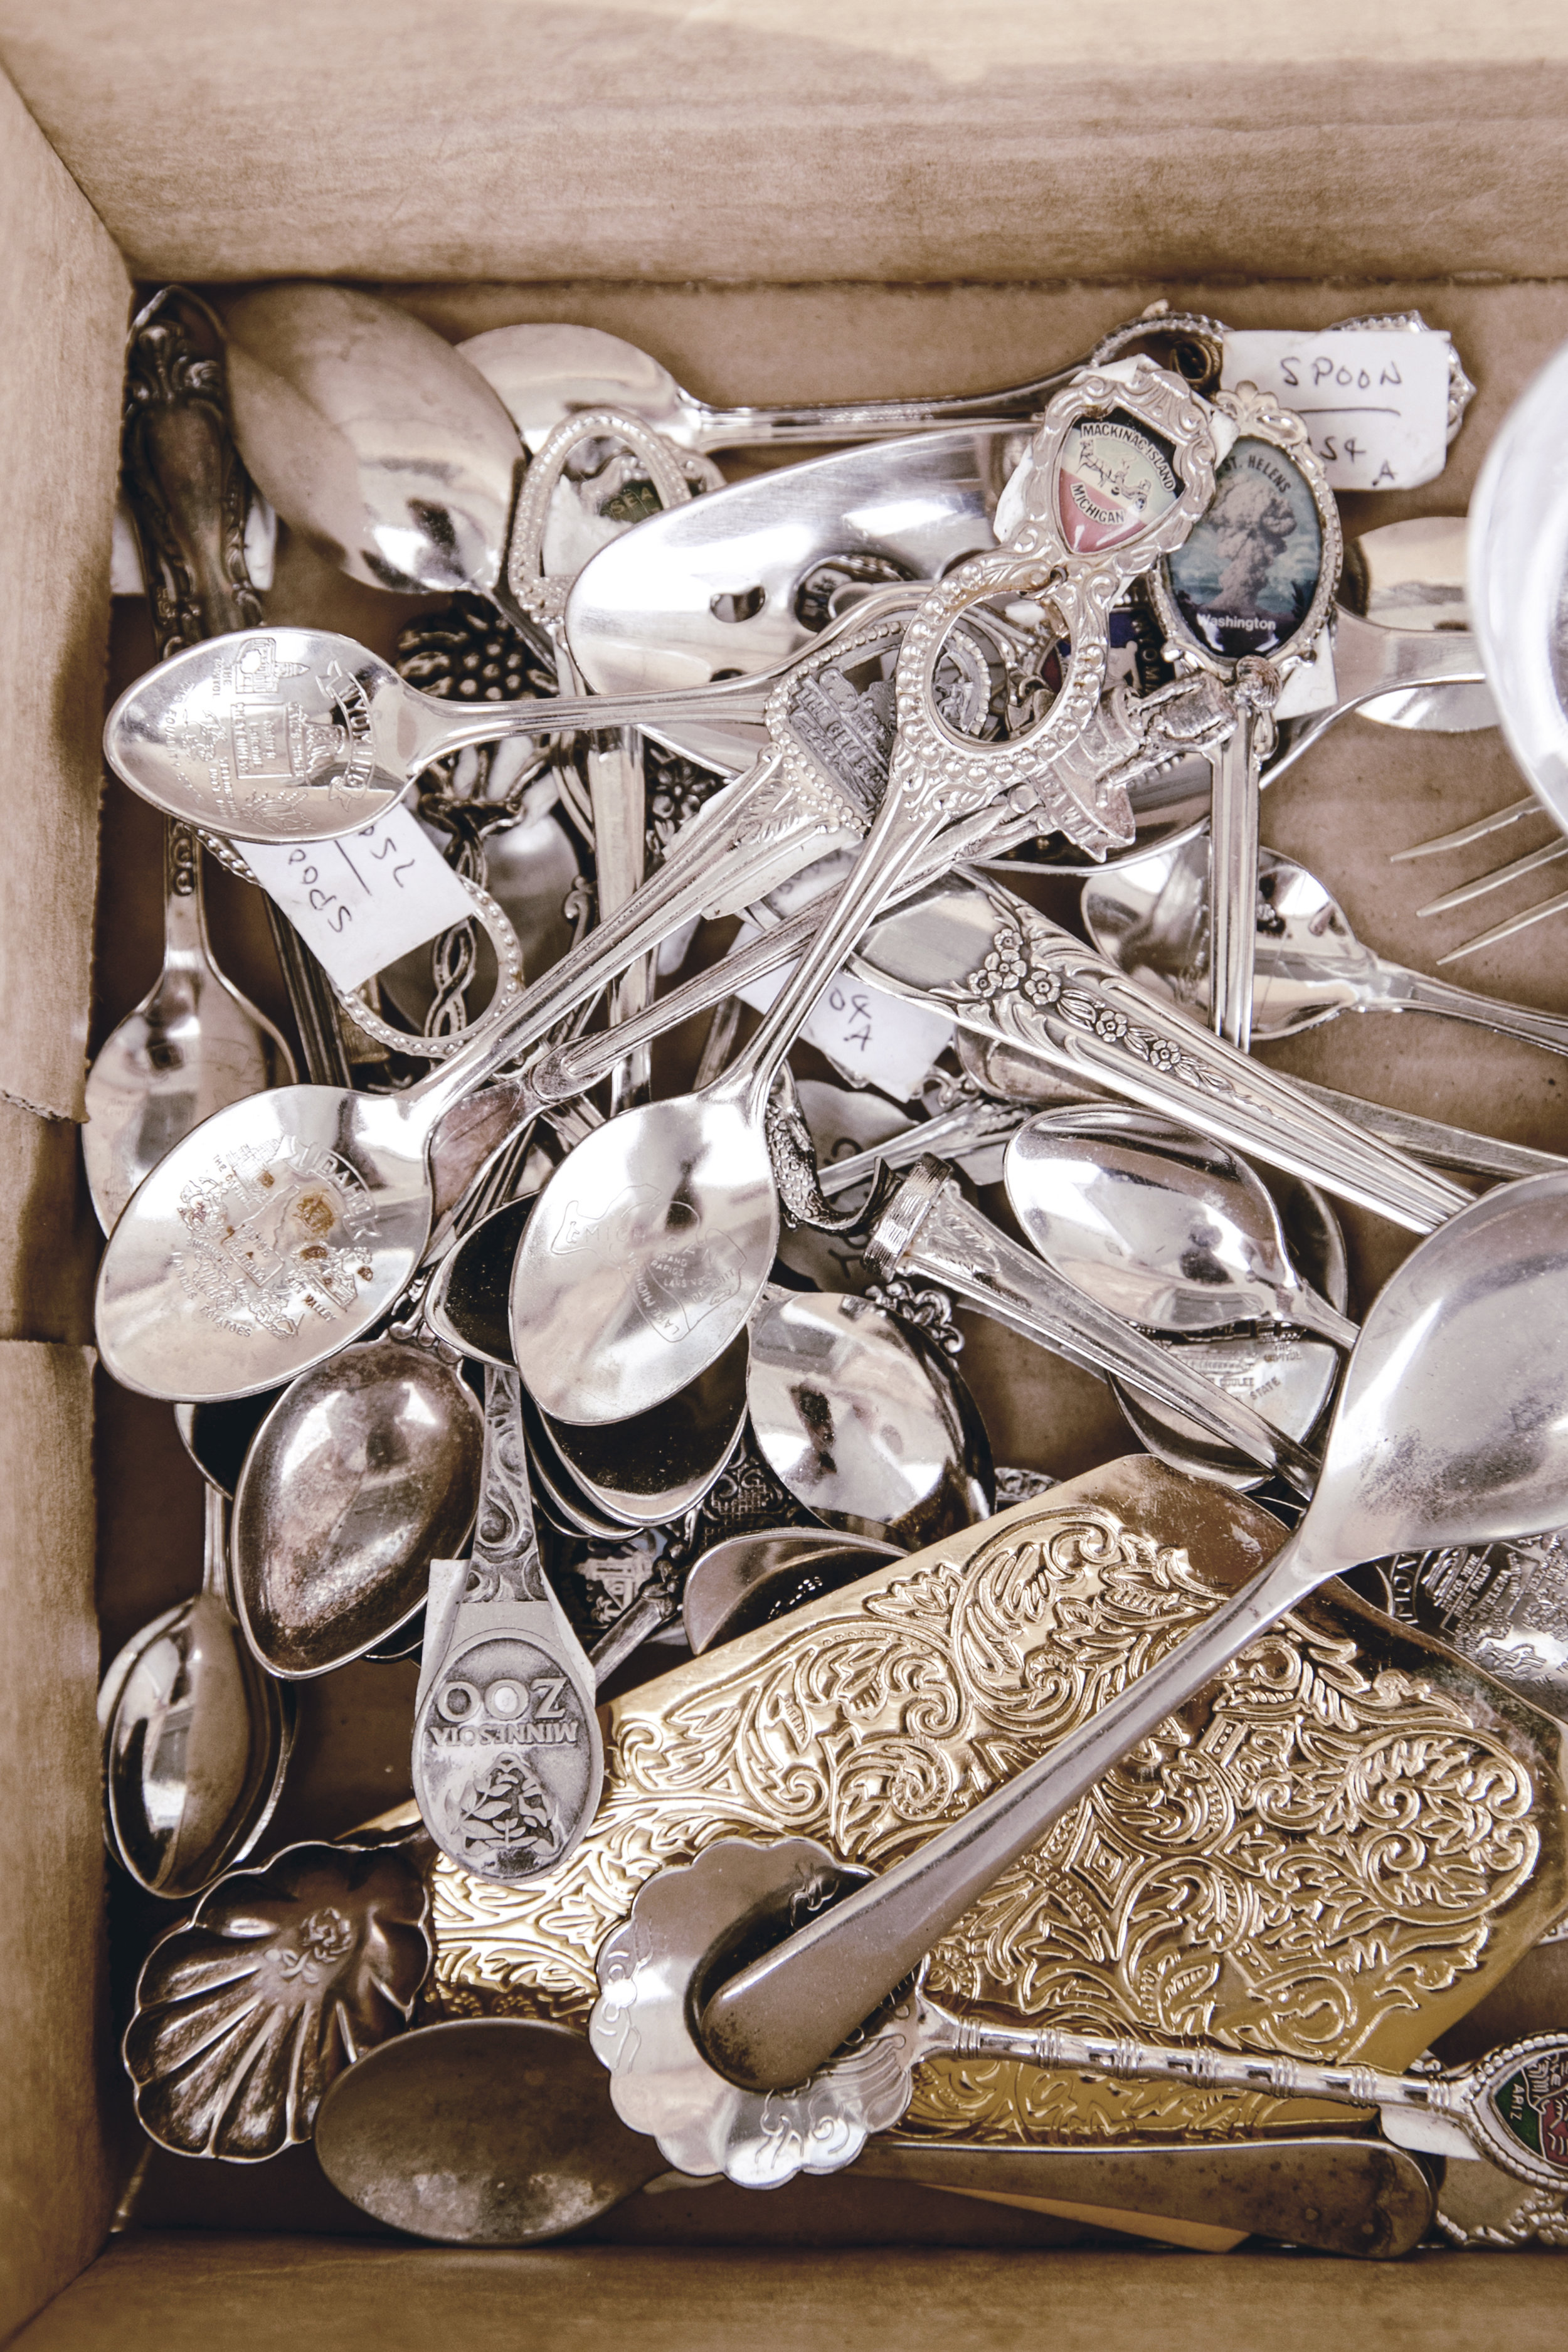 box of vintage silverware and serving pieces /heirloomed